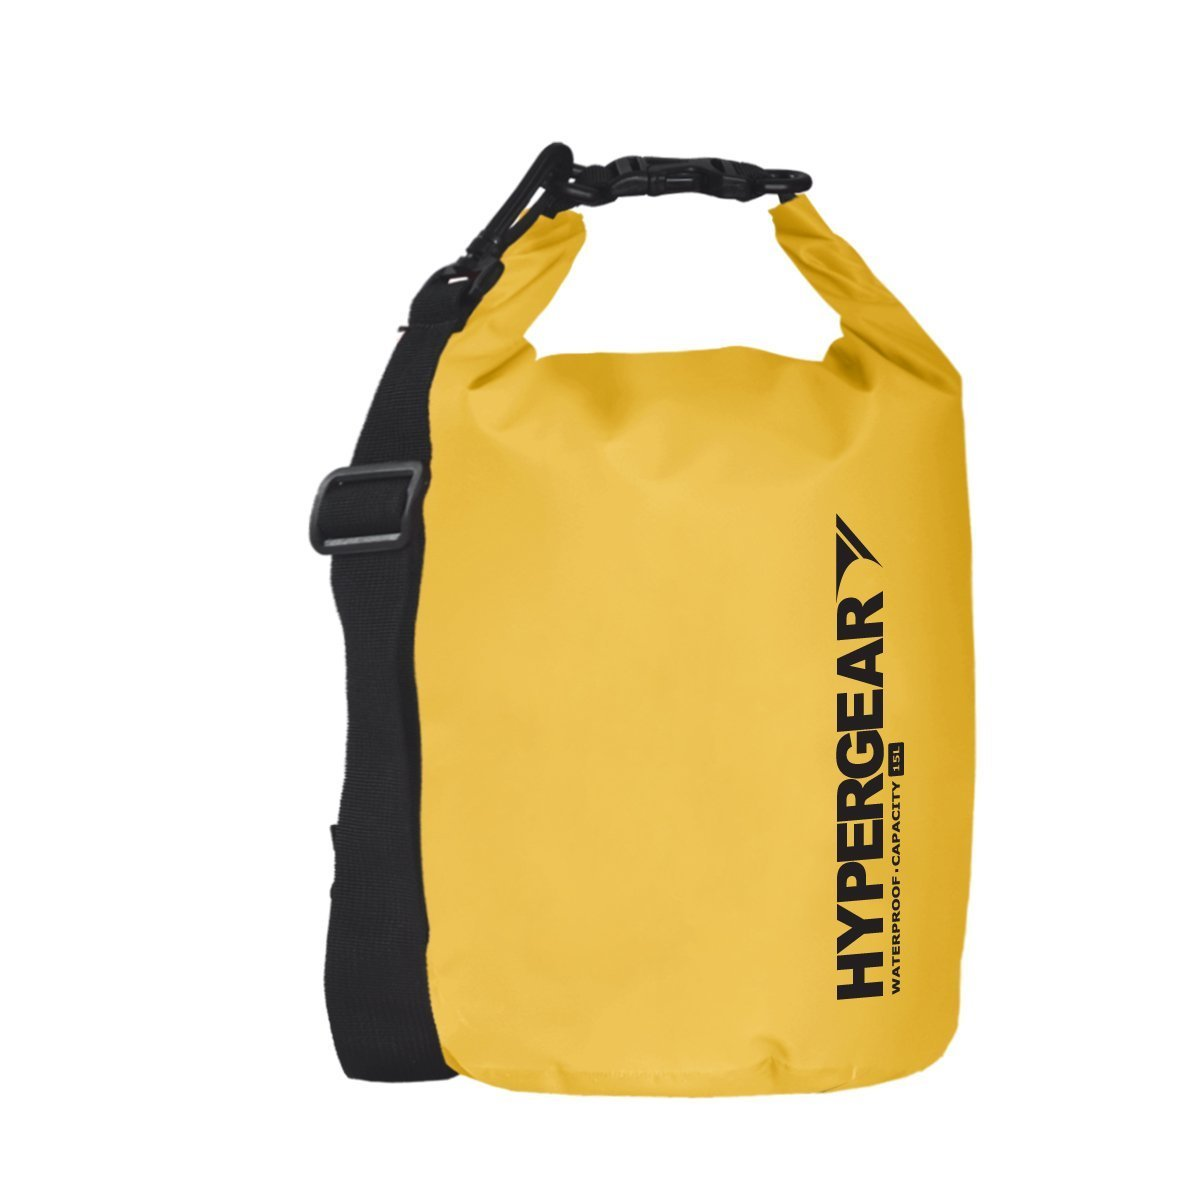 15L_Dry_Bag_Yellow_2048x.jpg